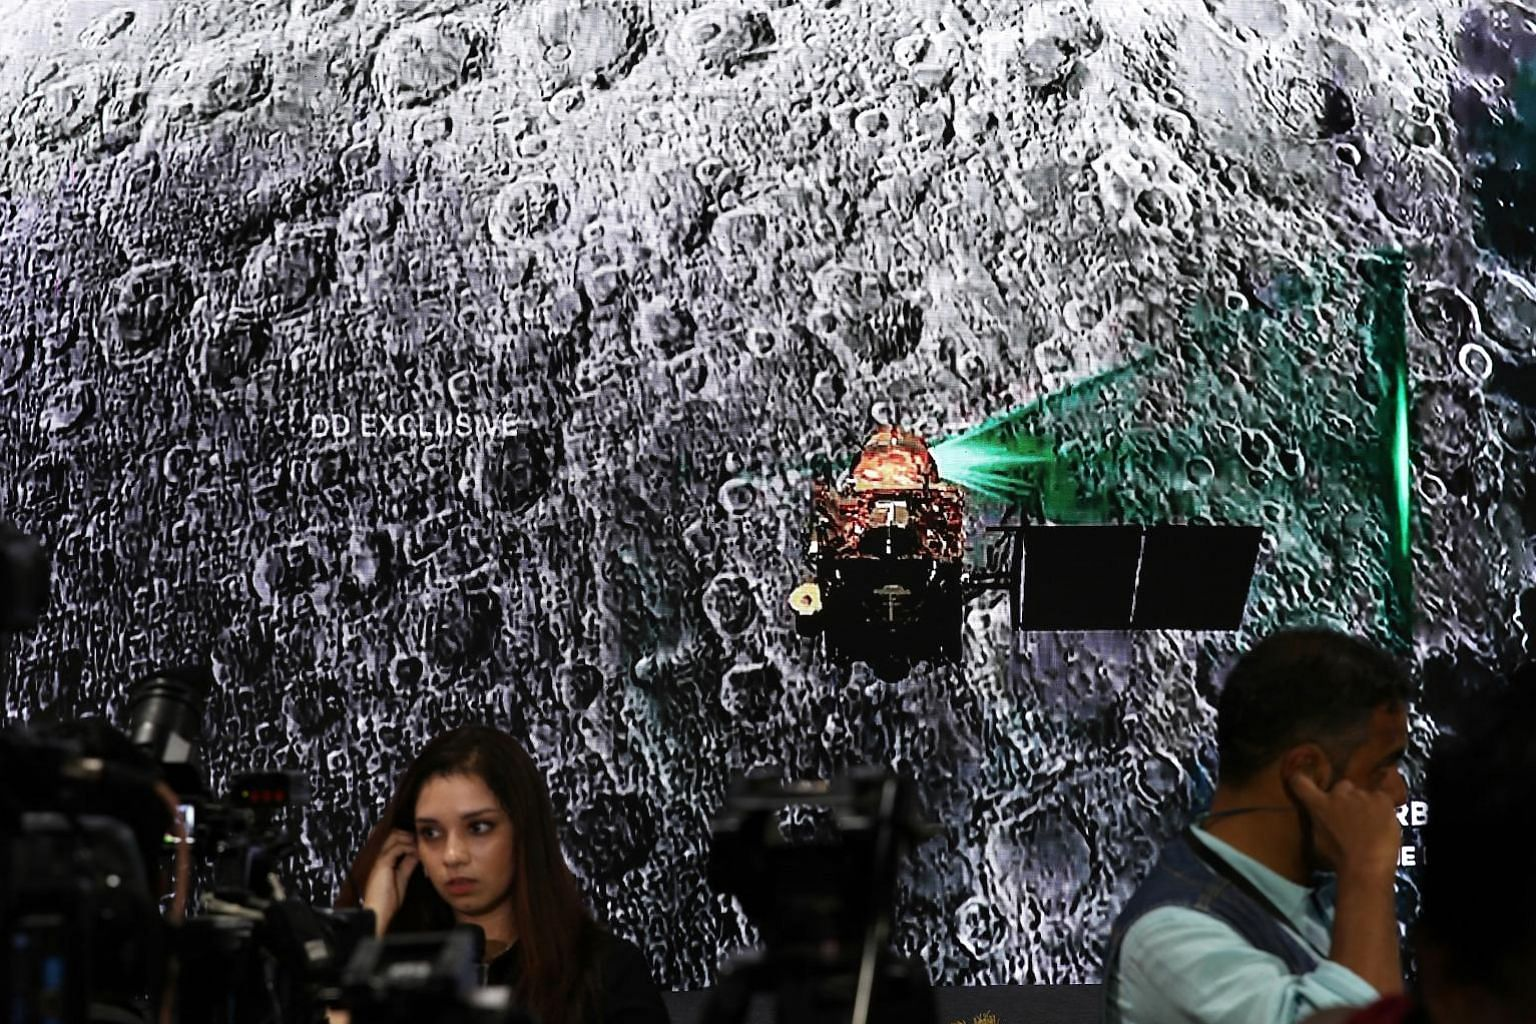 A video on India's Moon mission, Chandrayaan-2, playing on the LED wall of the media centre at the Indian Space Research Organisation's Telemetry Tracking and Command Network (Istrac) command centre in Bangalore on Friday.